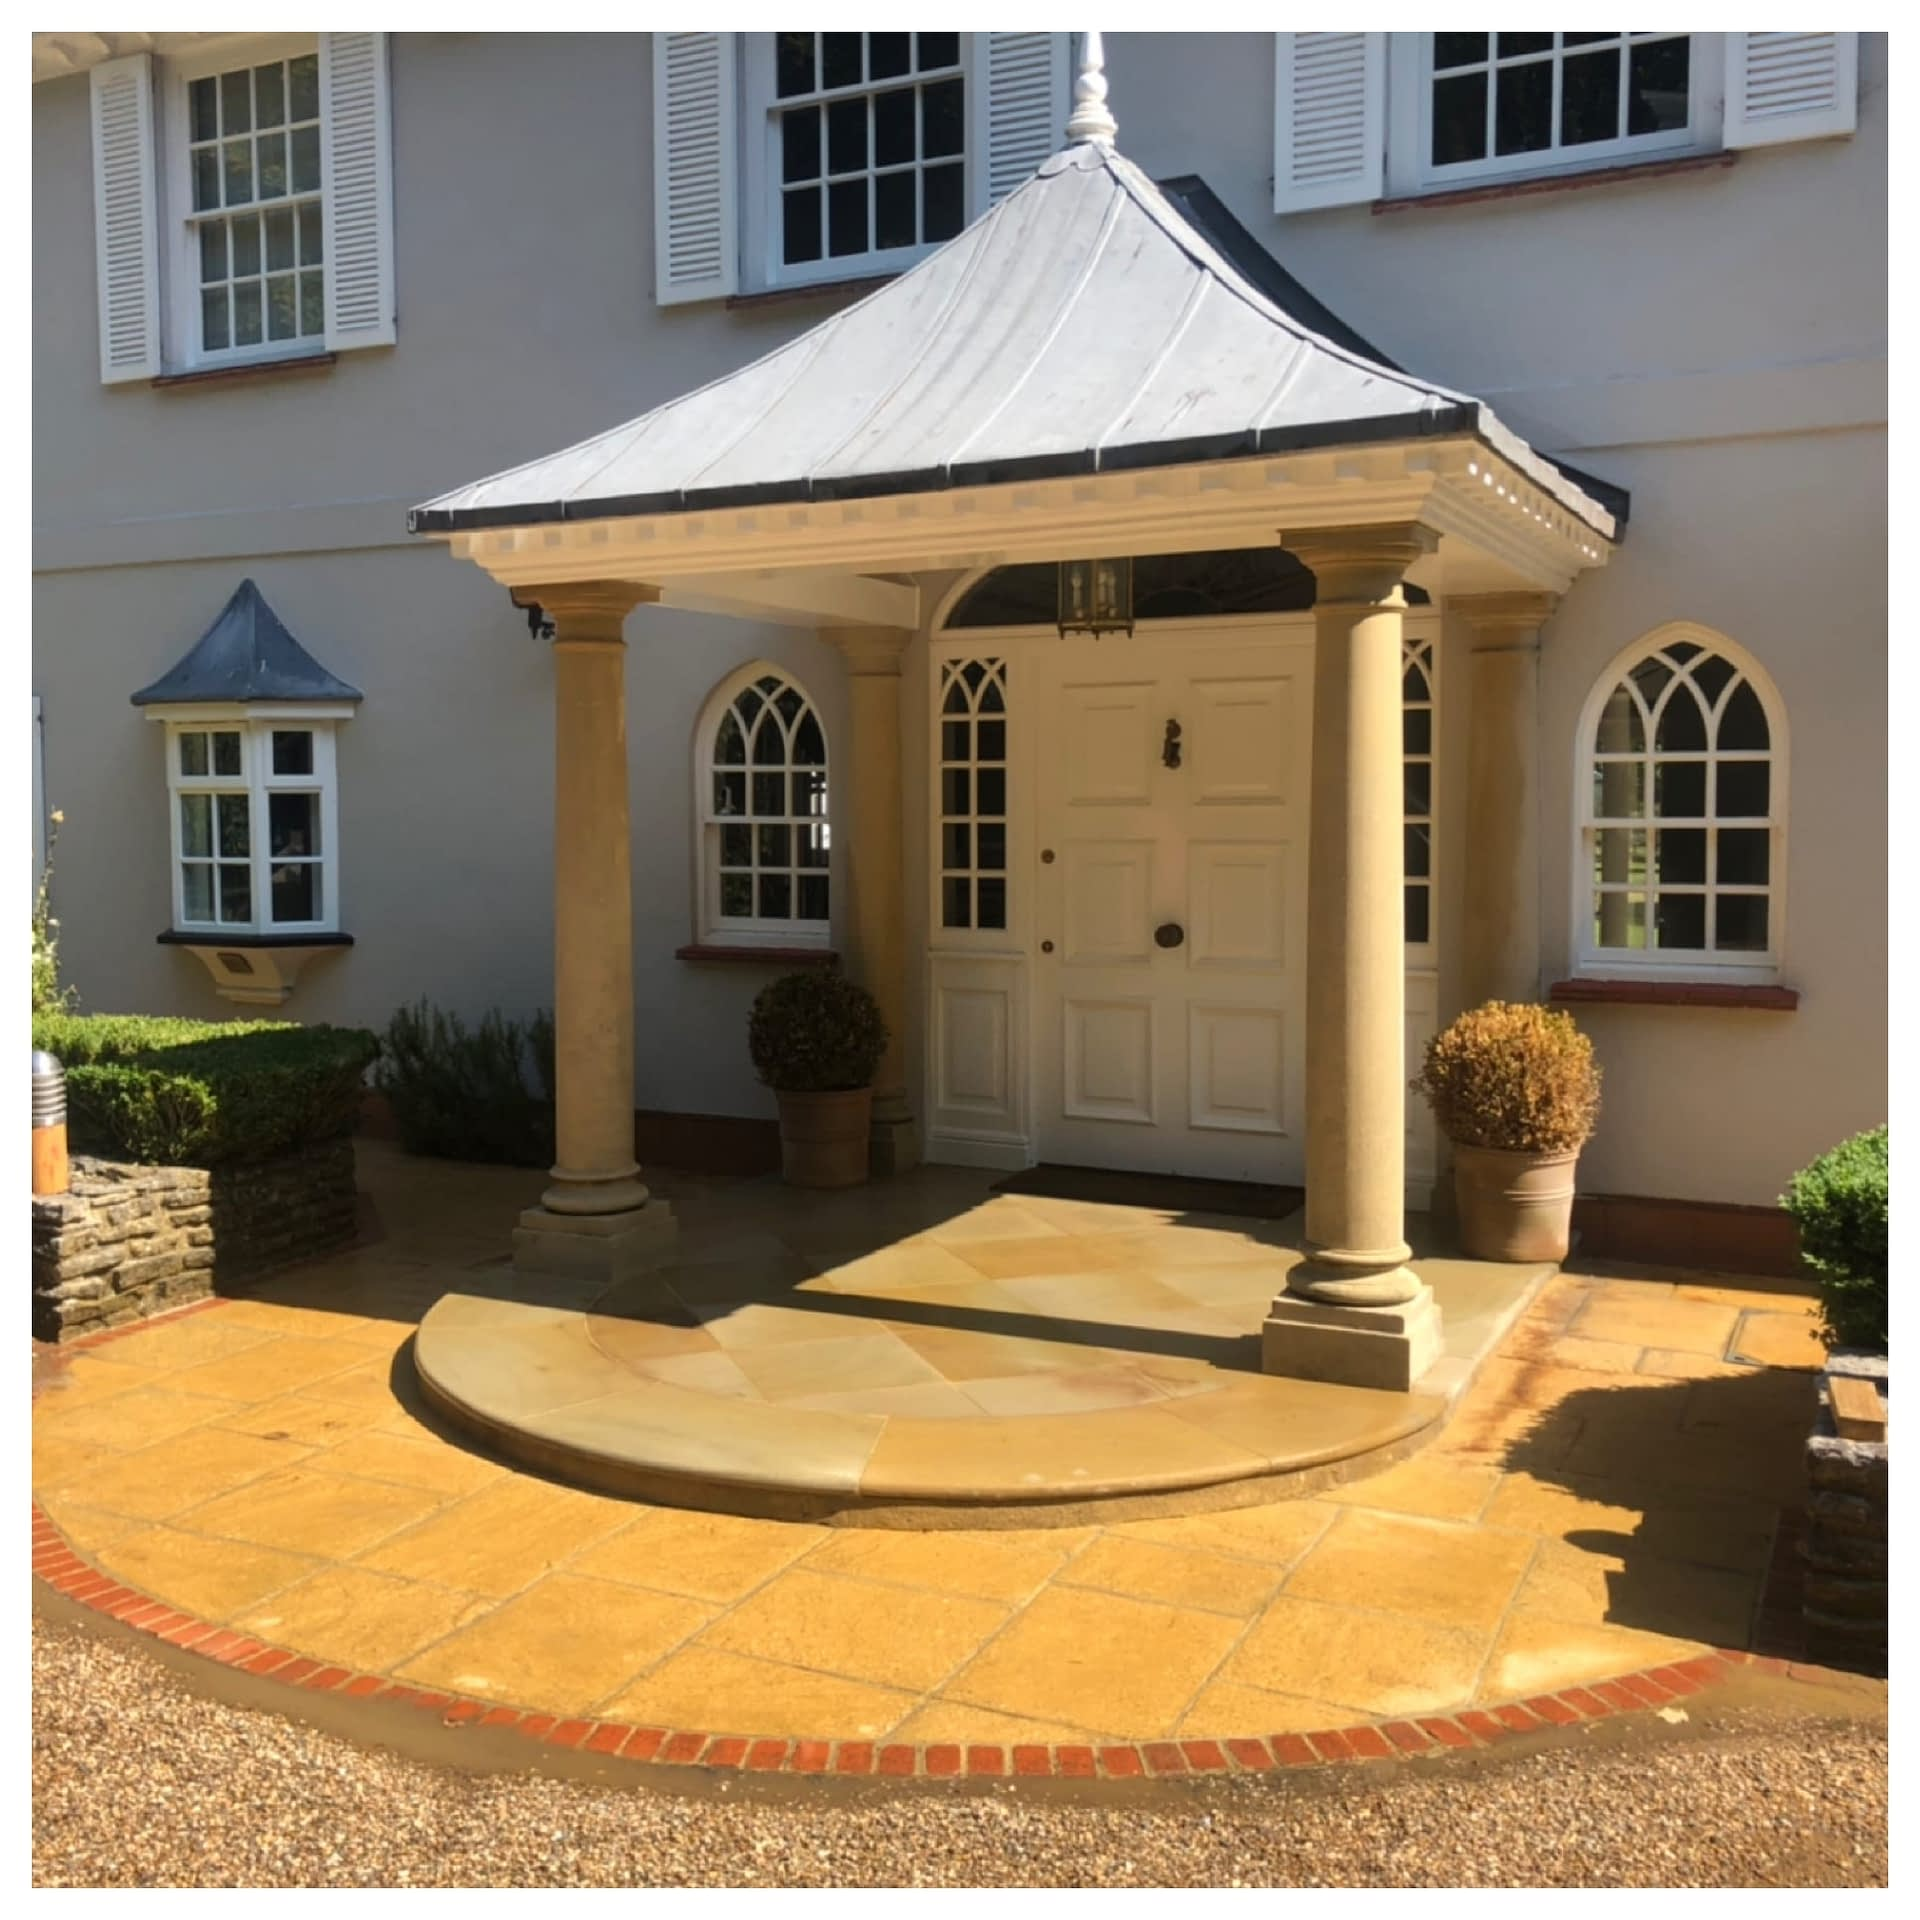 Therma-Tech superheated patio and stone cleaning in Ascot Berkshire